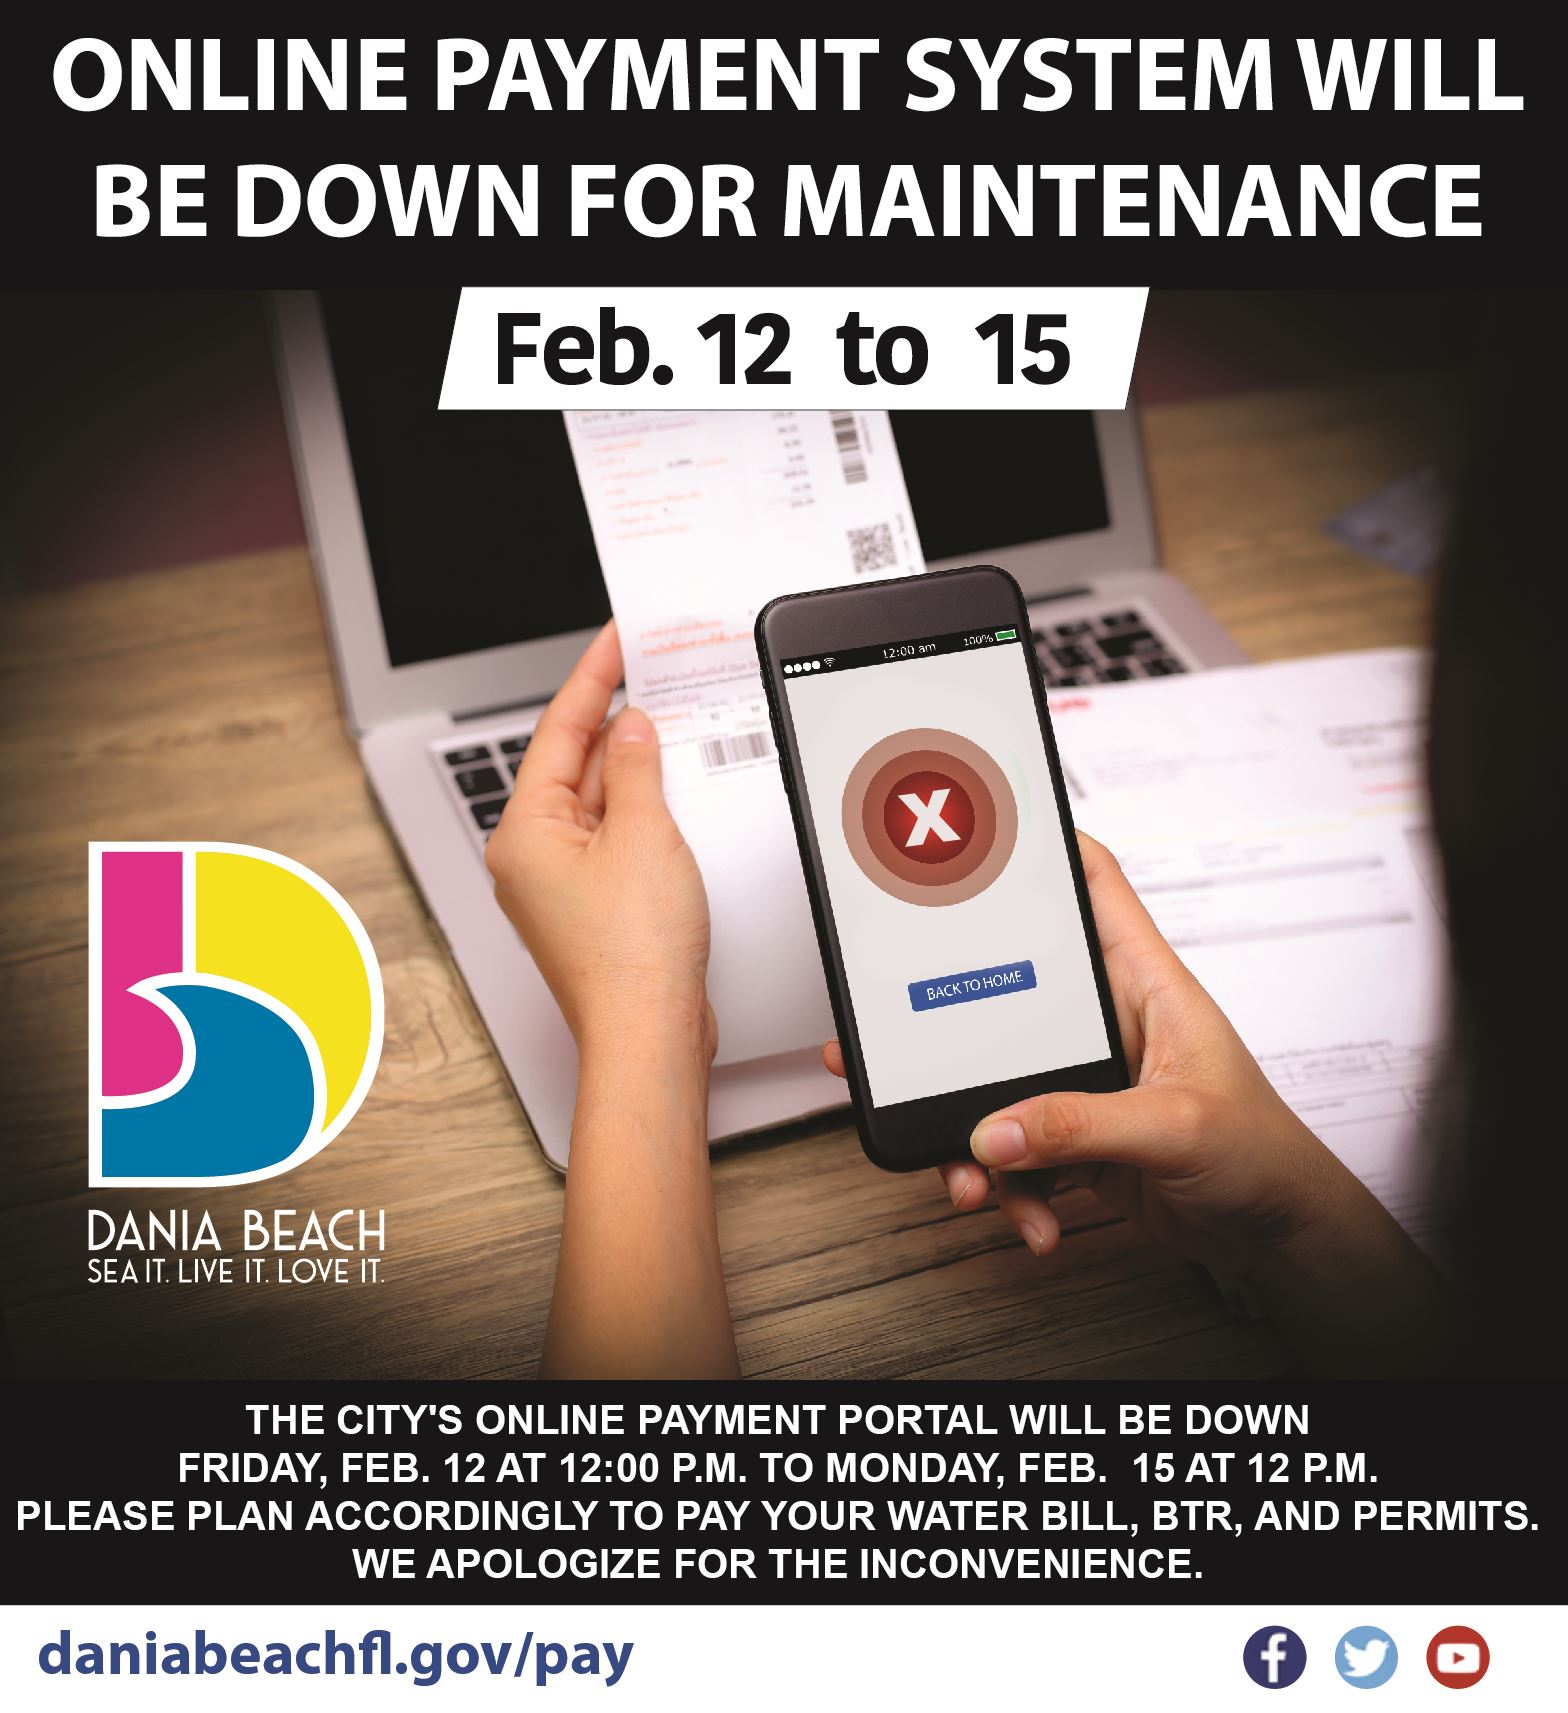 ONLINE PAYMENT DOWN FOR MAINTENANCE Dania Beach